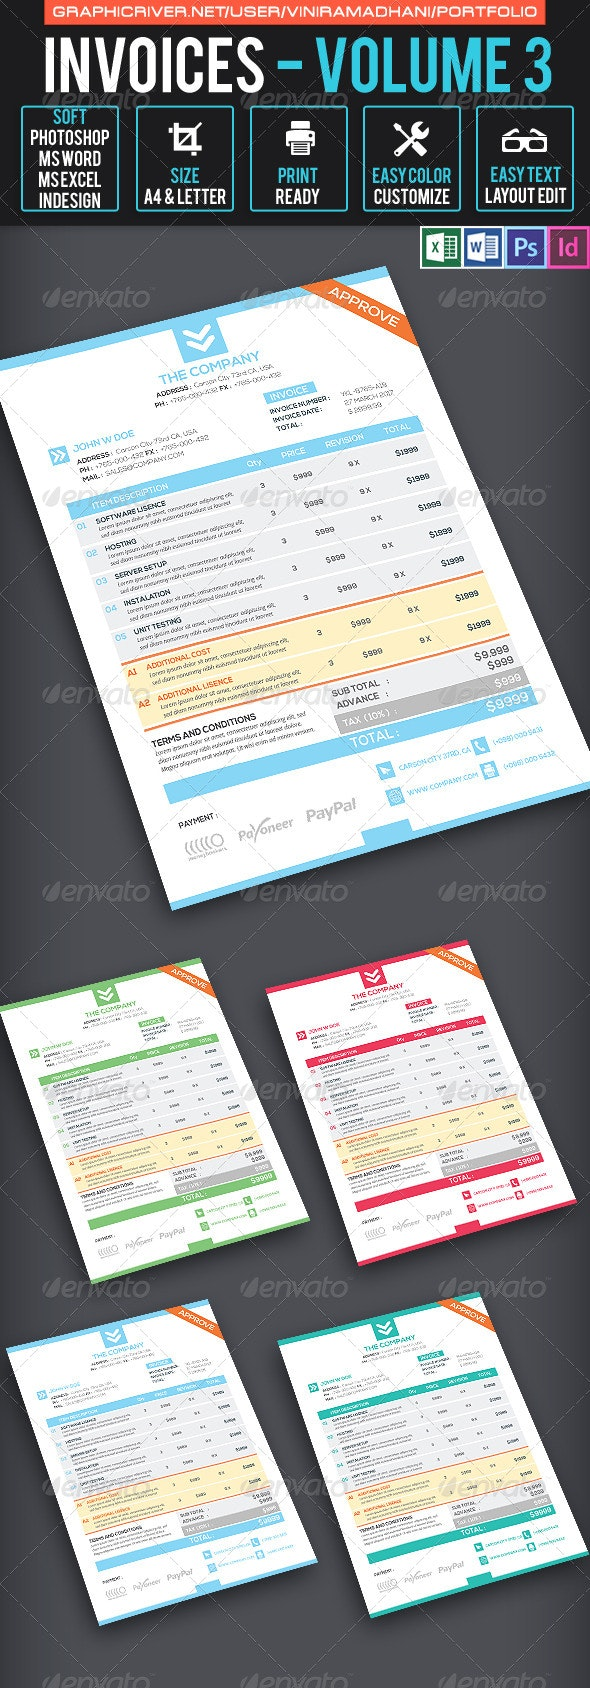 Invoices Volume 3 - Proposals & Invoices Stationery